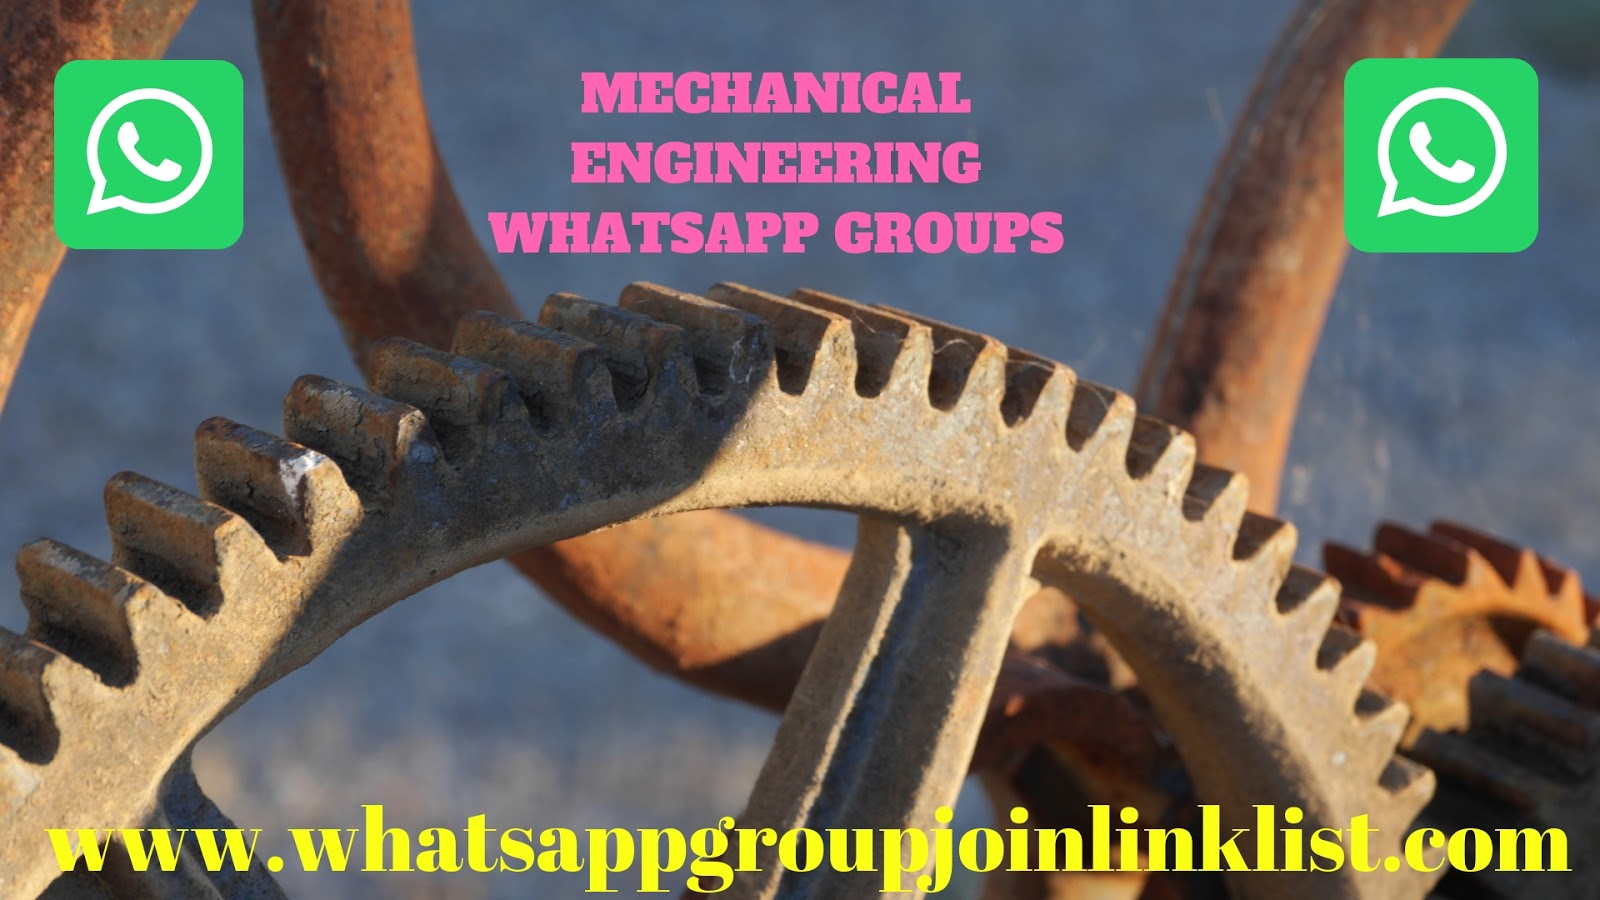 JOIN MECHANICAL ENGINEERING WHATSAPP GROUP JOIN LINK LIST